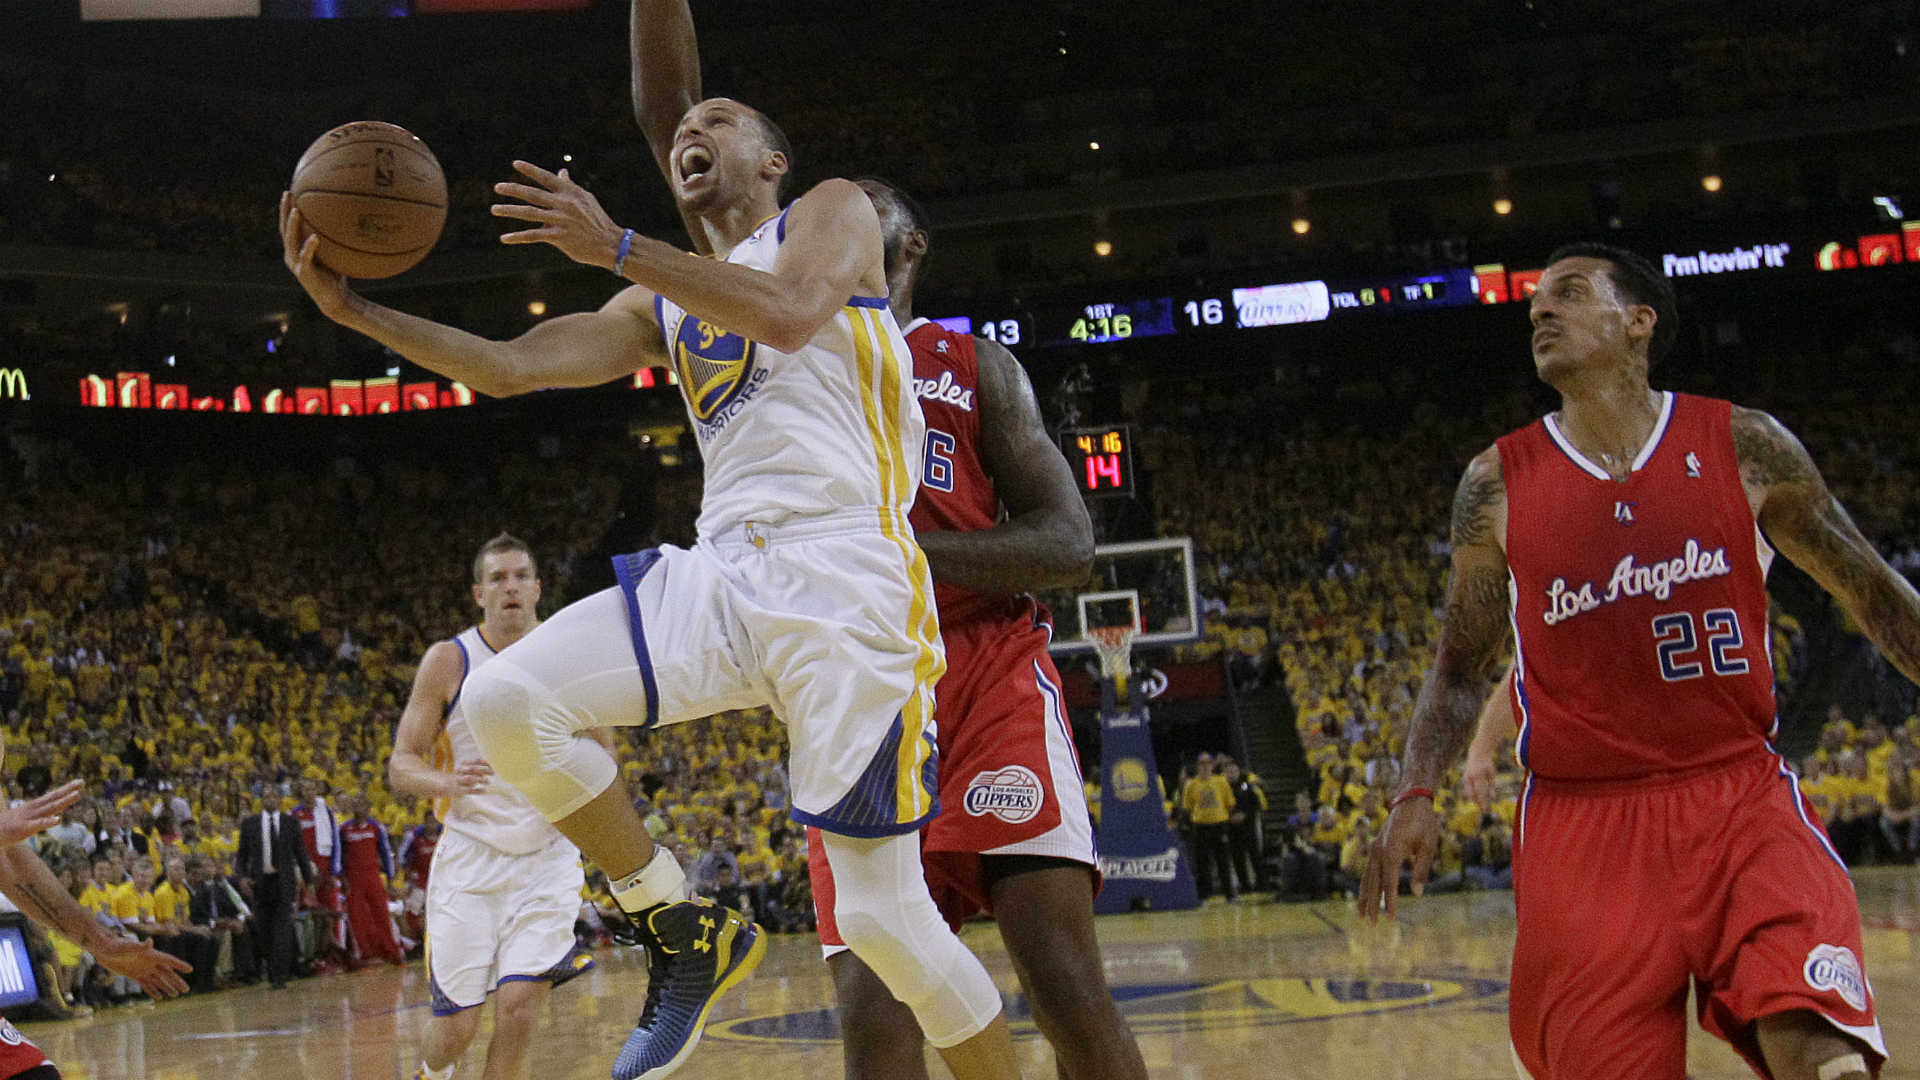 Stephen Curry-050214-AP-FTR.jpg